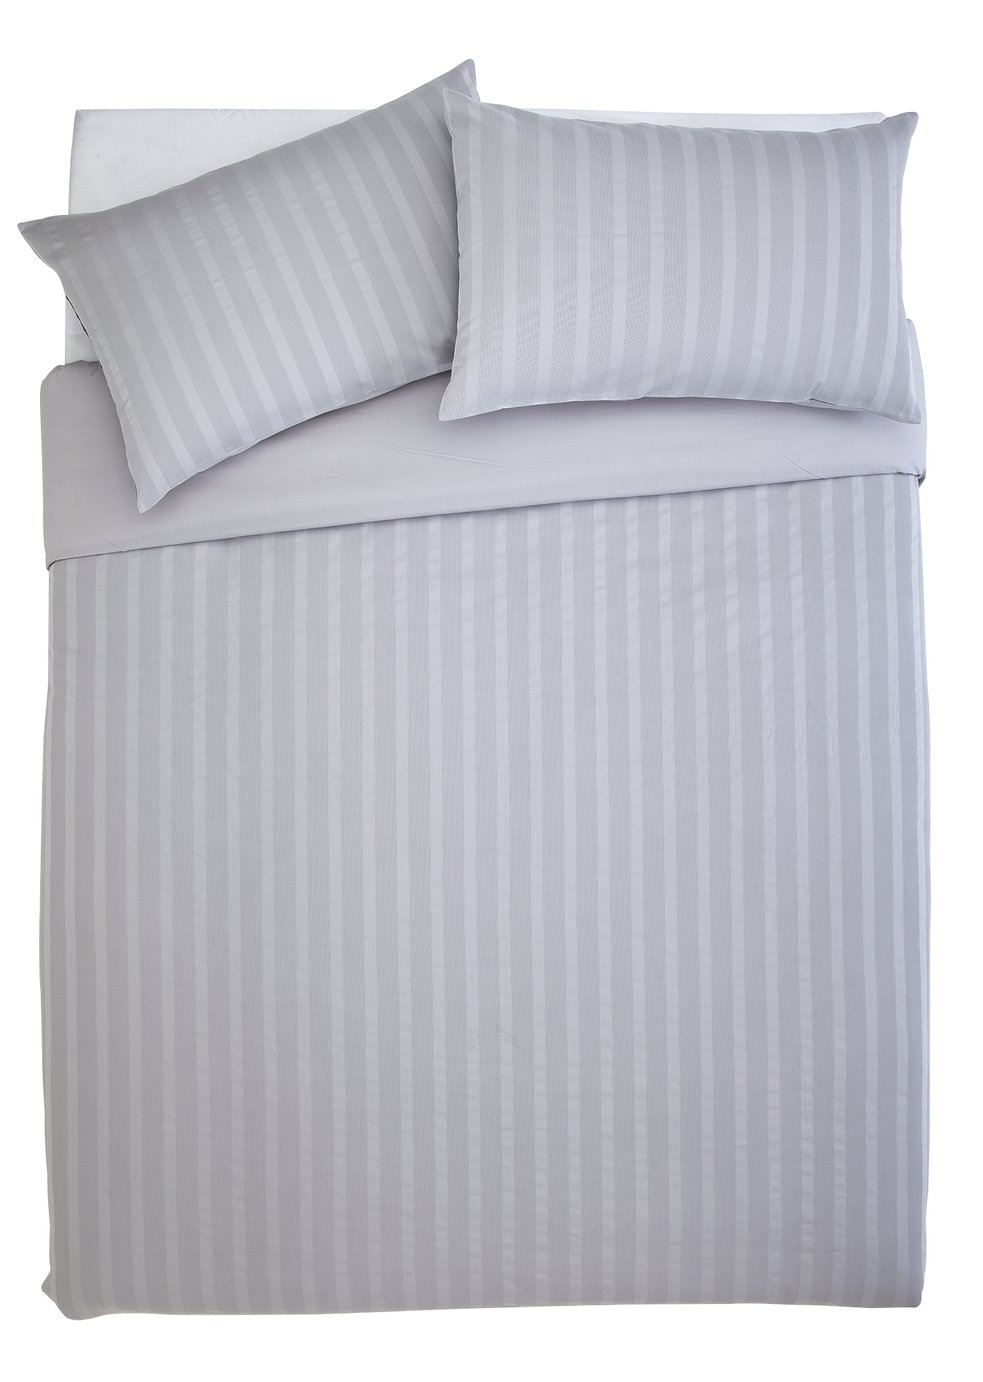 Sainsbury's Home 300TC Grey Waffle Bedding Set - Superking